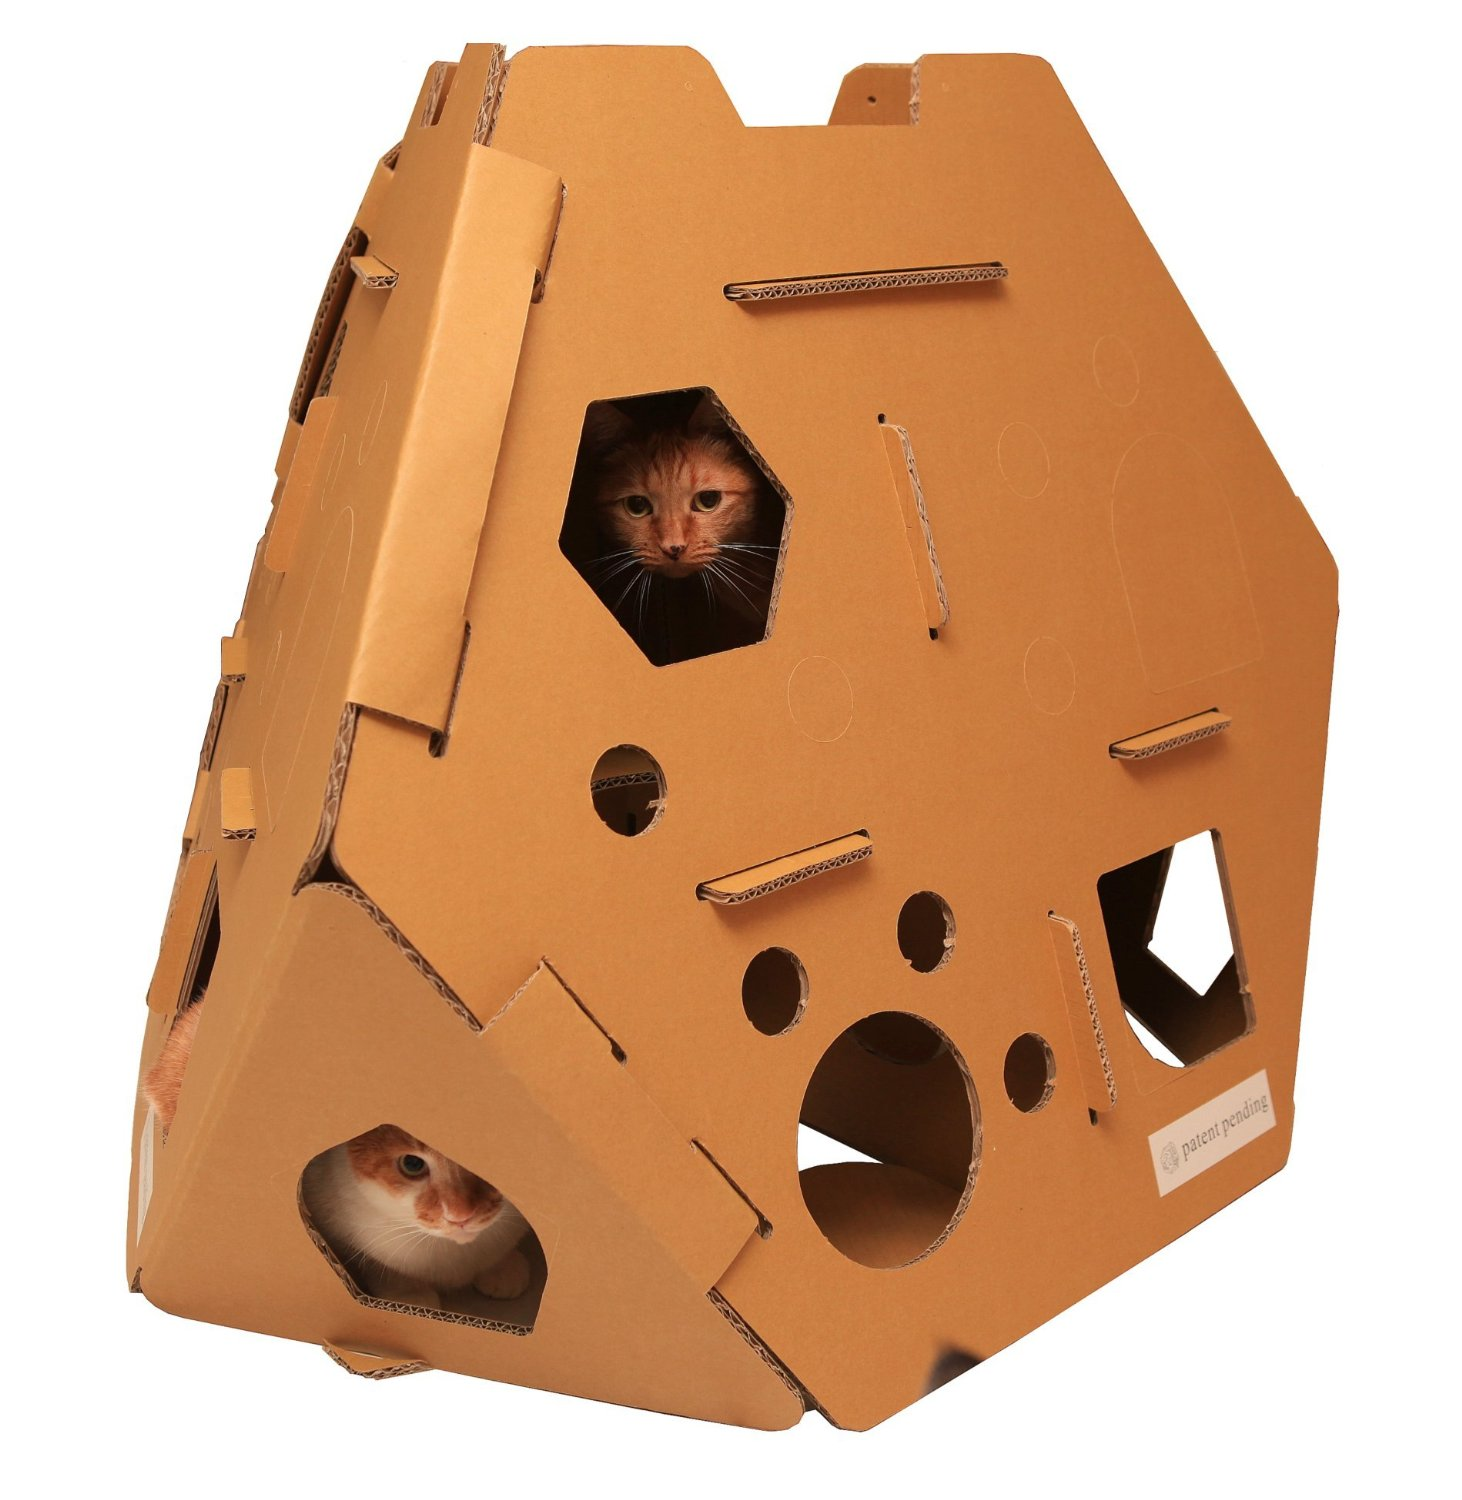 cardboard cat house cat scratcher play house could be. Black Bedroom Furniture Sets. Home Design Ideas